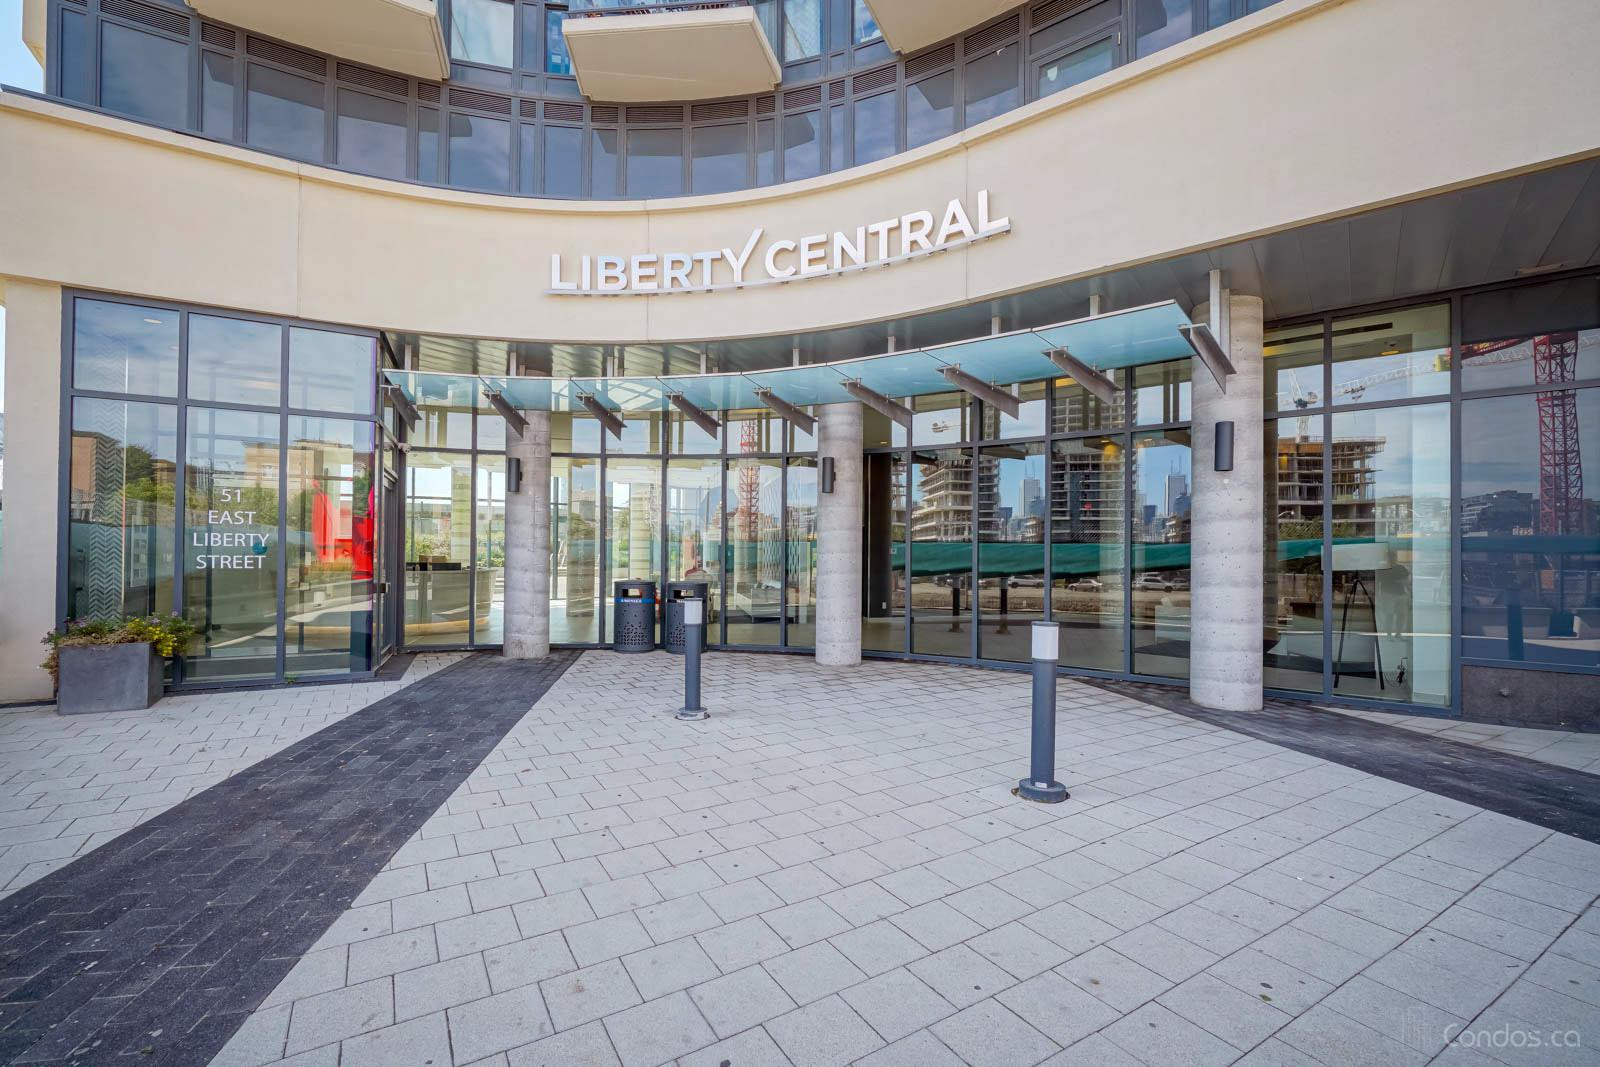 Liberty Central Phase I at 51 East Liberty St, Toronto 1